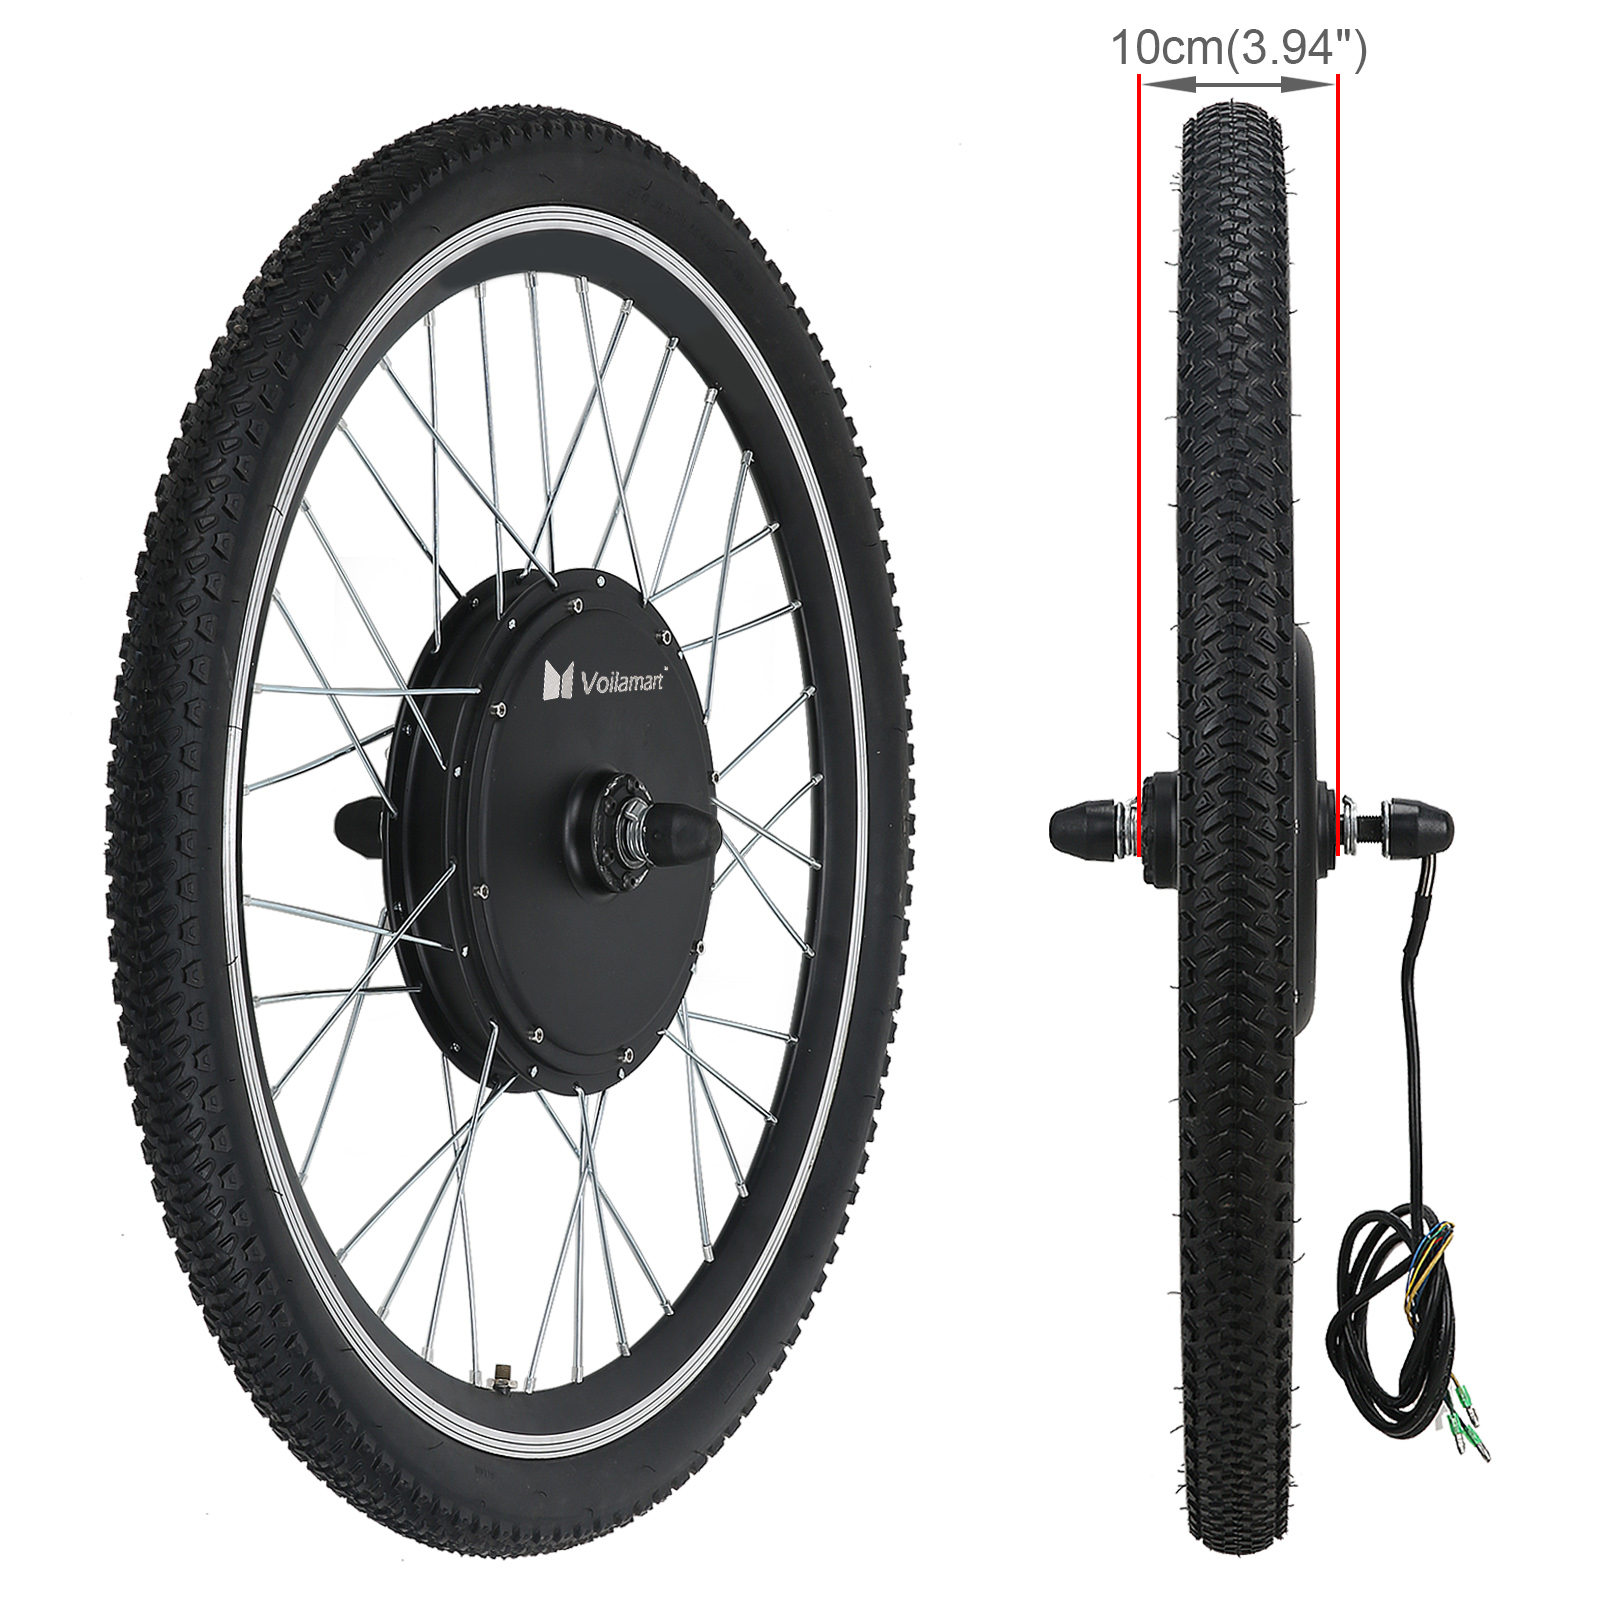 48V Front Wheel Electric Bicycle Motor Conversion Kit